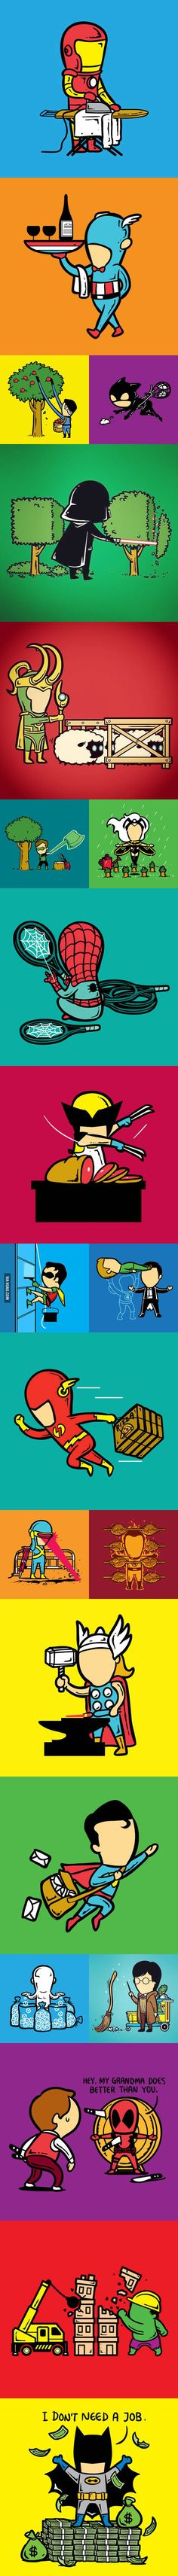 What Would Our Superheroes Do If They Got A Part-time Job? - 9GAG